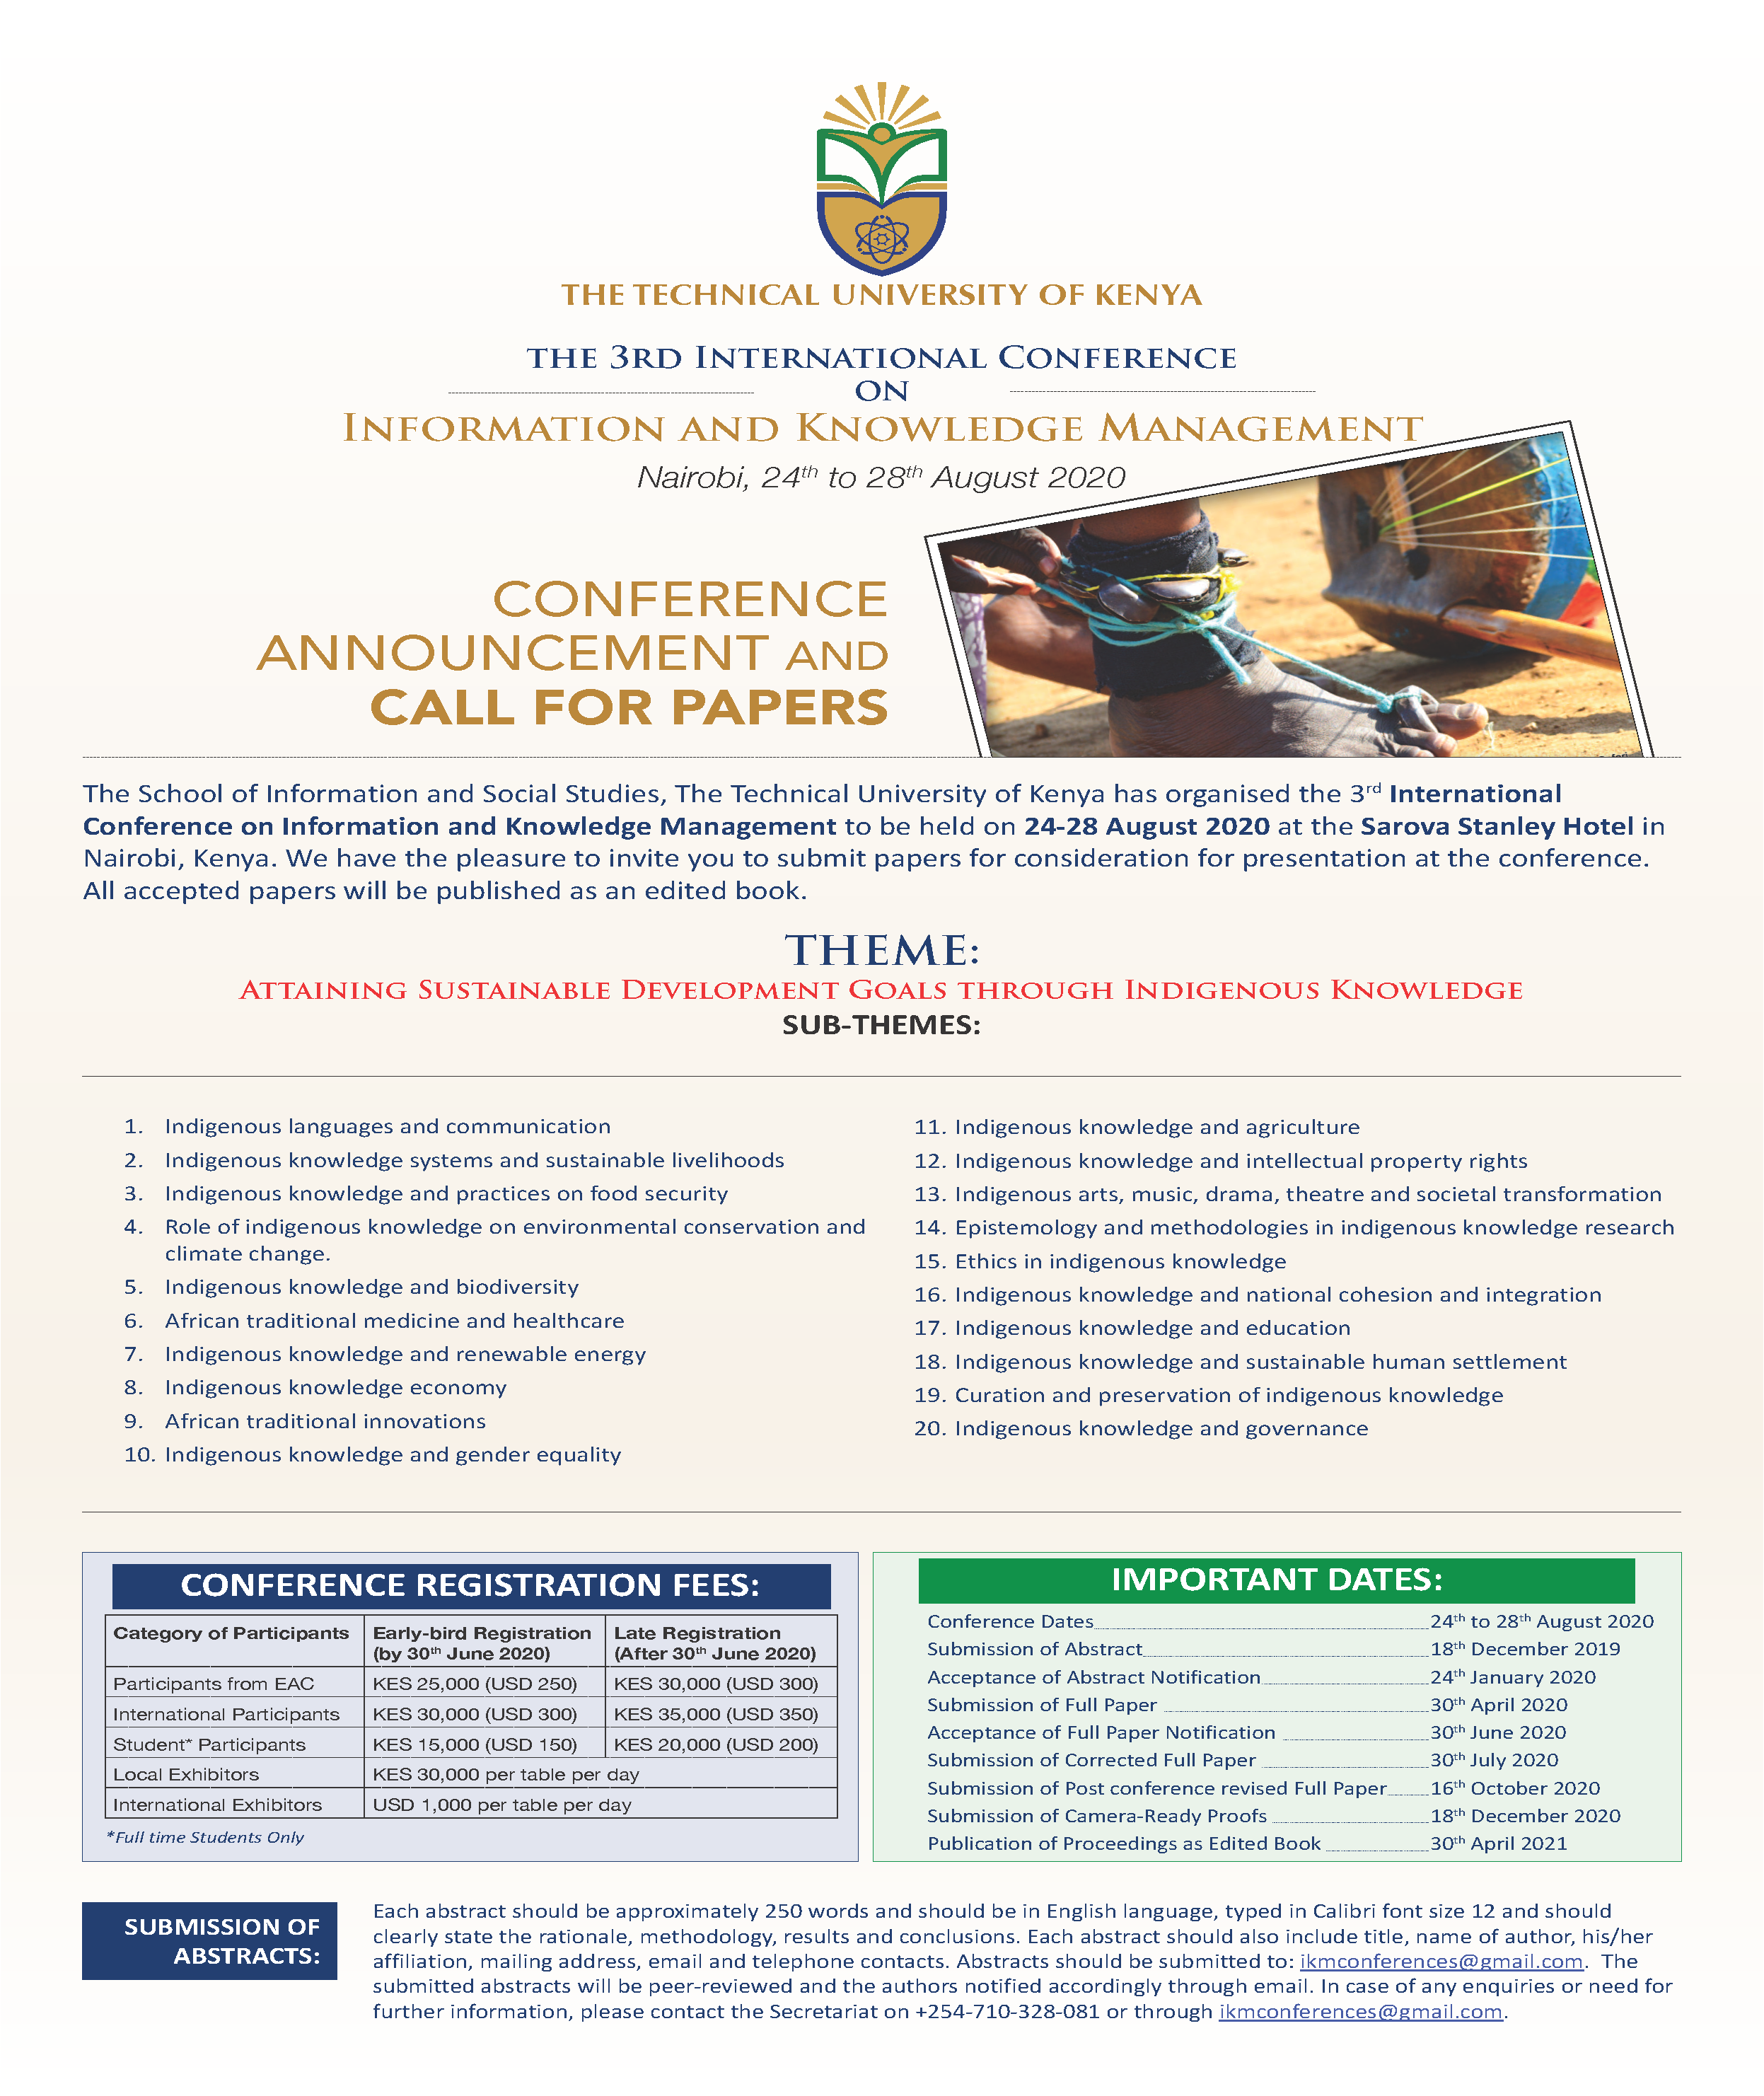 The 3rd International Conference on IKM